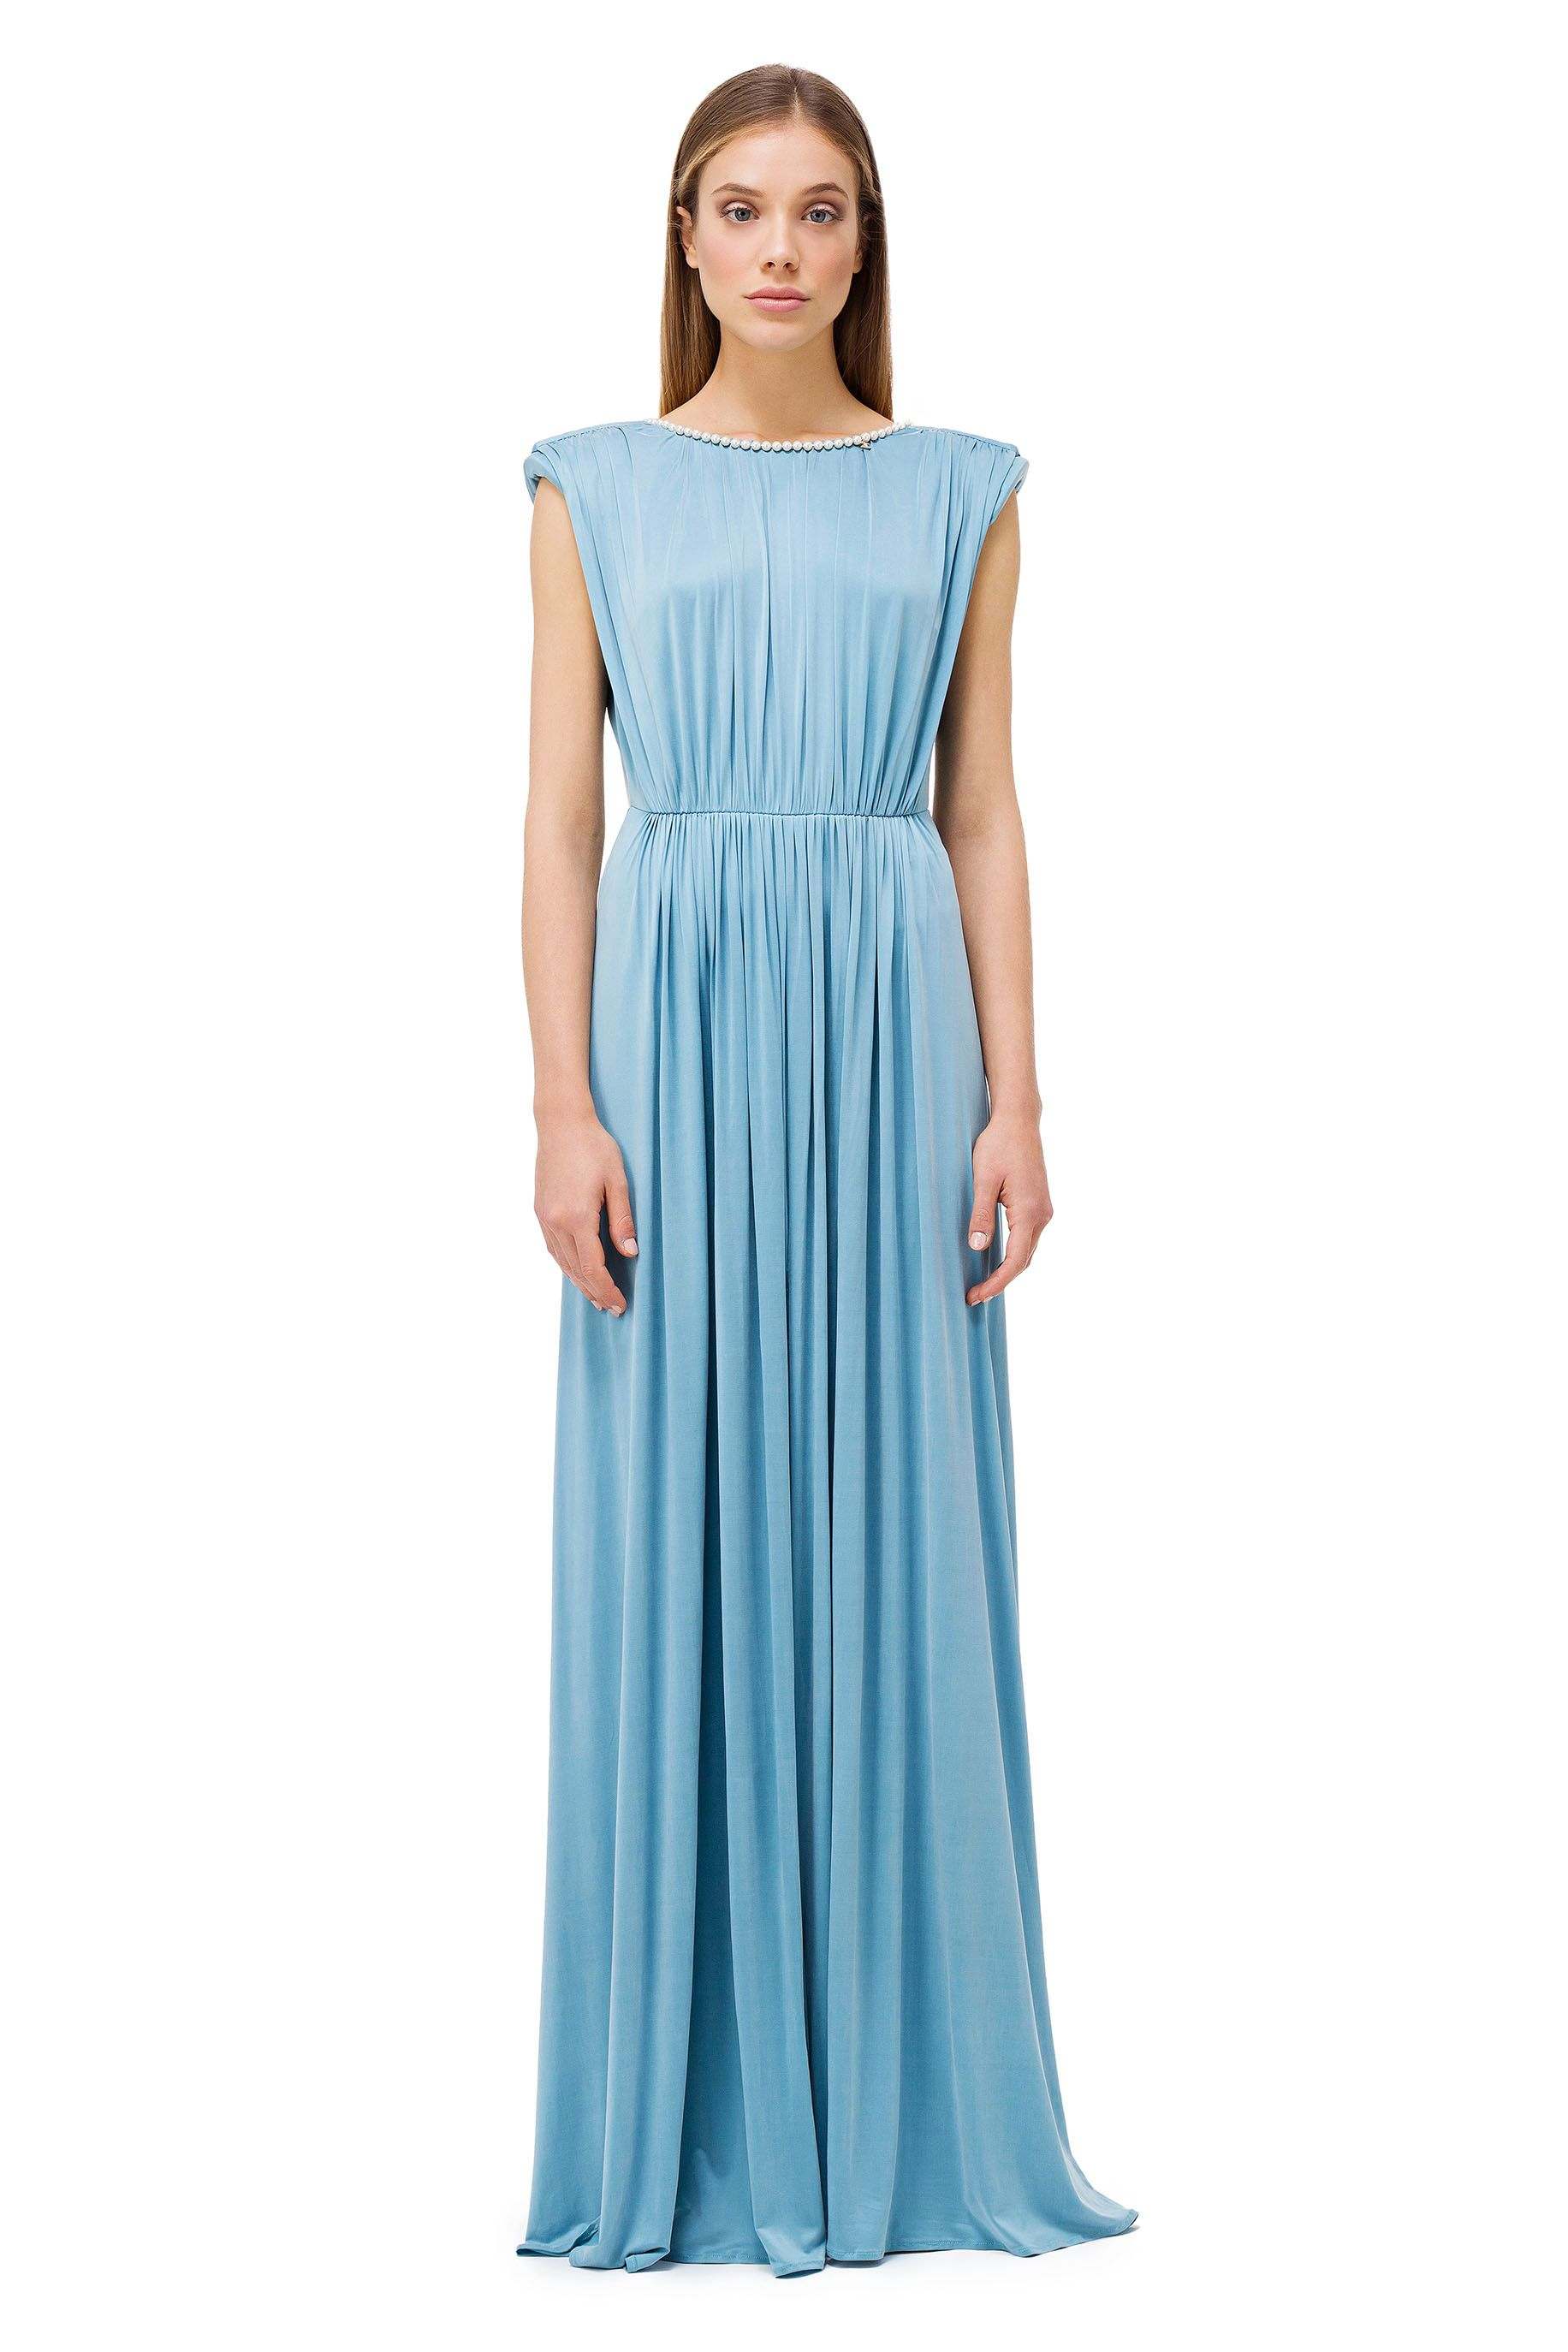 a81b88cee107 Long dress with pearls - Elisabetta Franchi